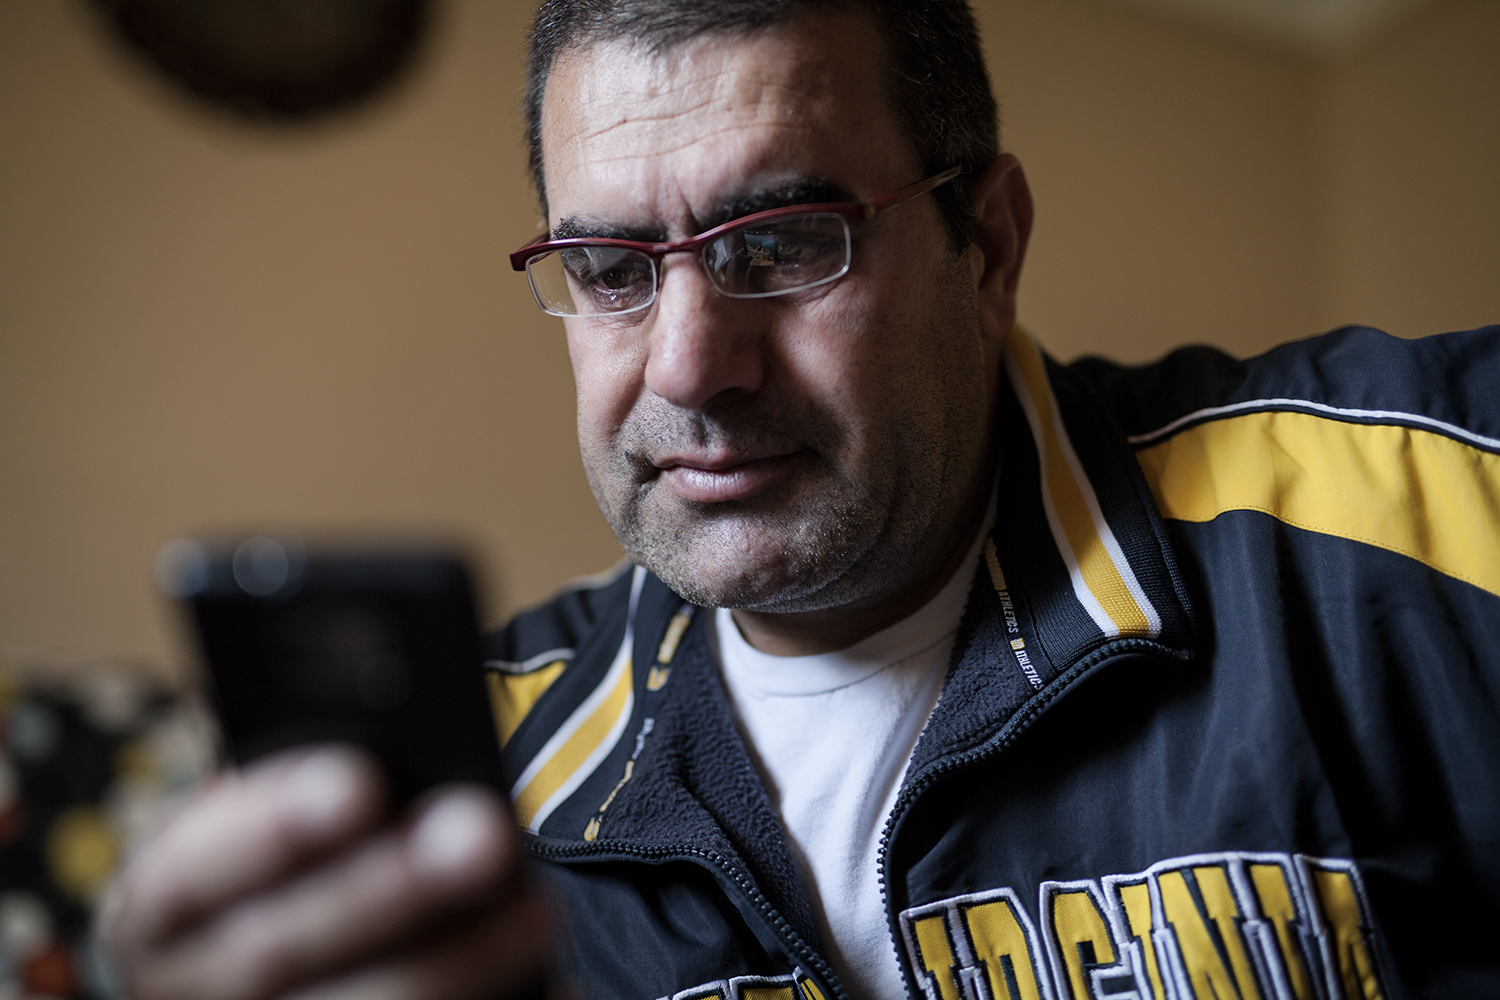 Dearborn, MI - Thursday, Nov. 19, 2015: Mohamad Al Mohsen tears up while looking at old photographs sent to him by family in Jordan in the living room of his home on Thursday, Nov. 19. 2015 in Dearborn, MI. Al Mohsen said that going through the photos is sometimes happy and sometimes makes him cry.